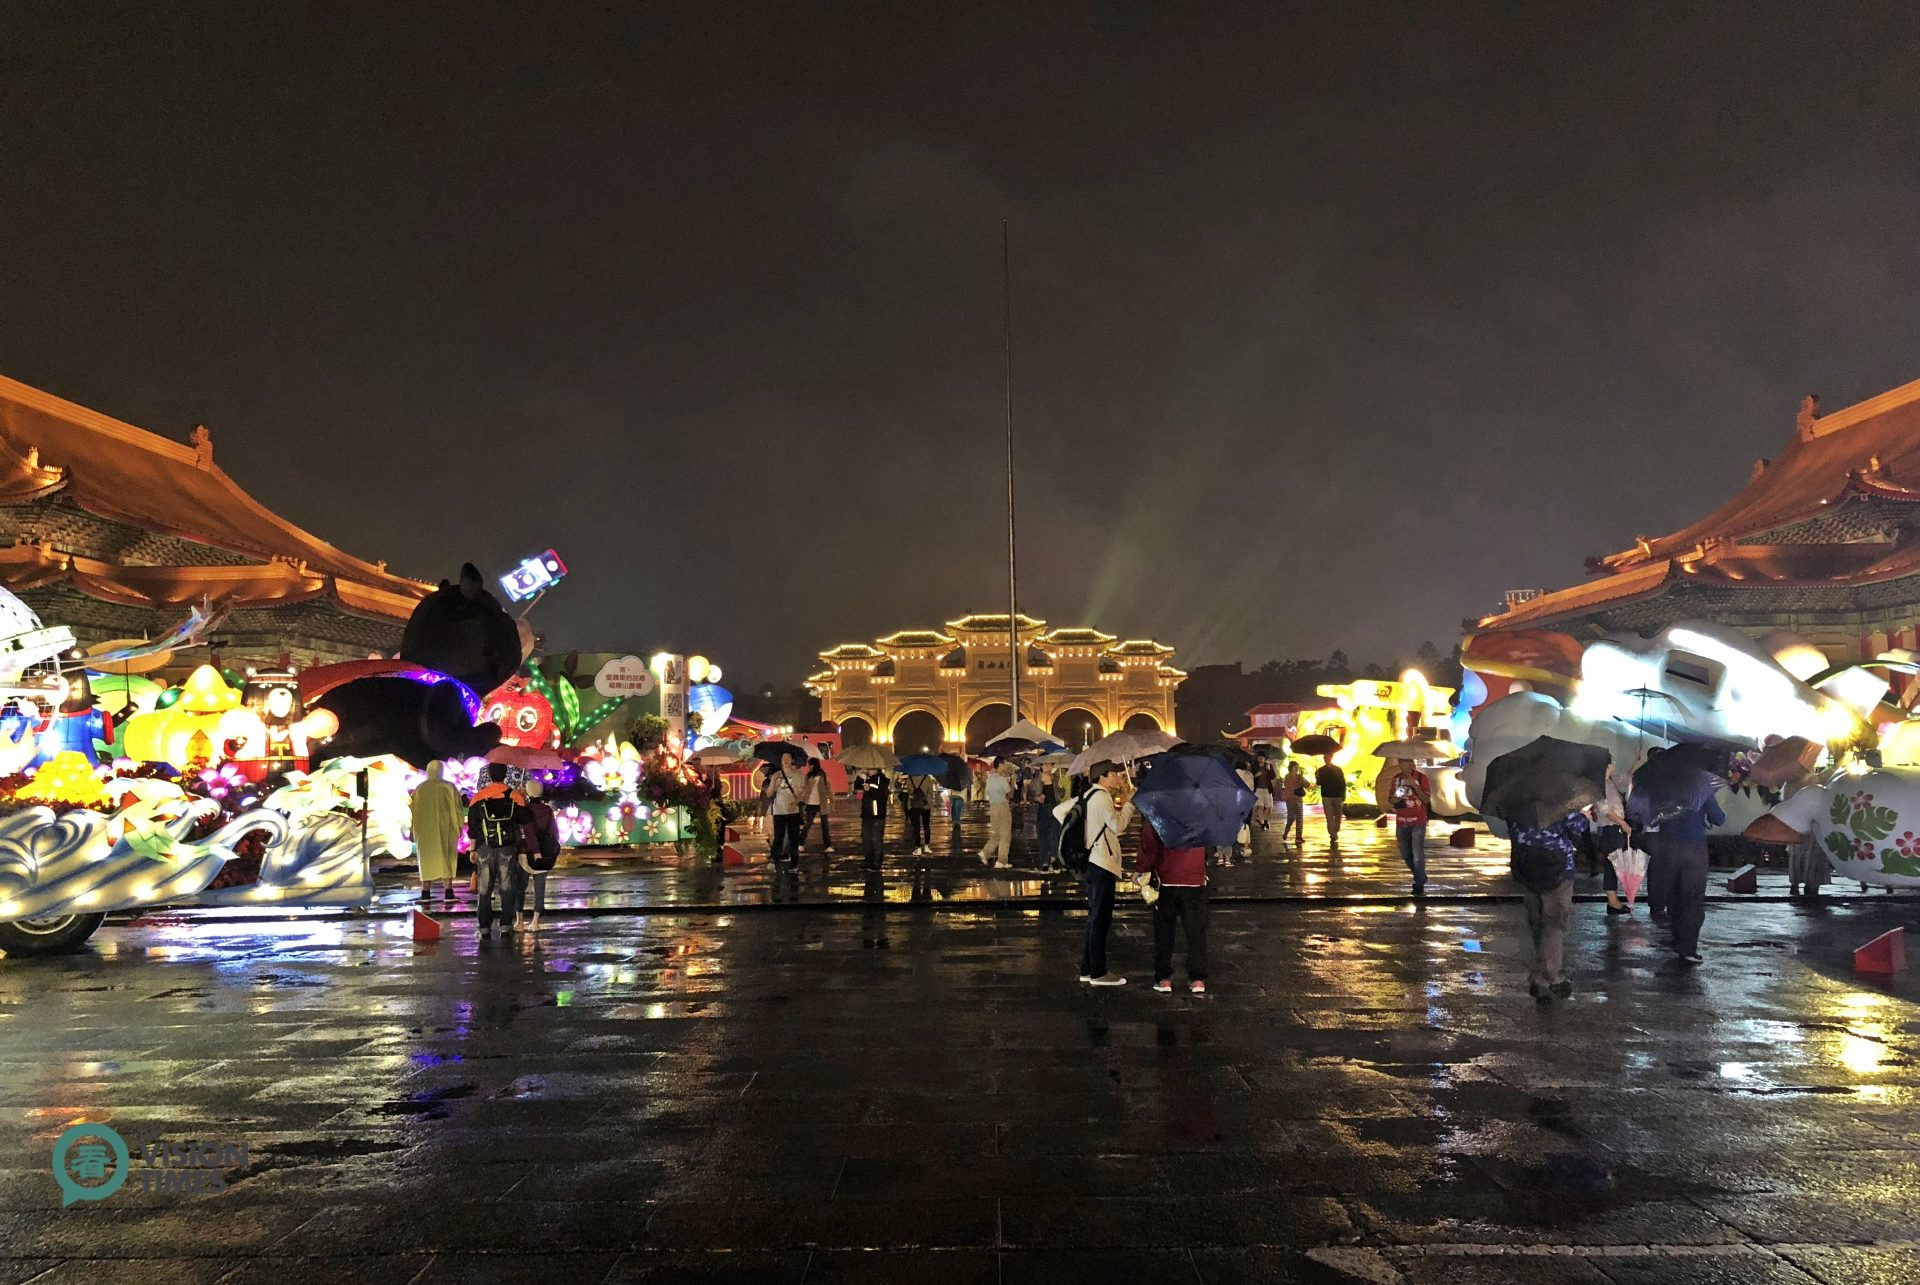 24 colorful floats are displayed at plaza of the Chiang Kai-shek Memorial. (Image: Billy Shyu / Vision Times)